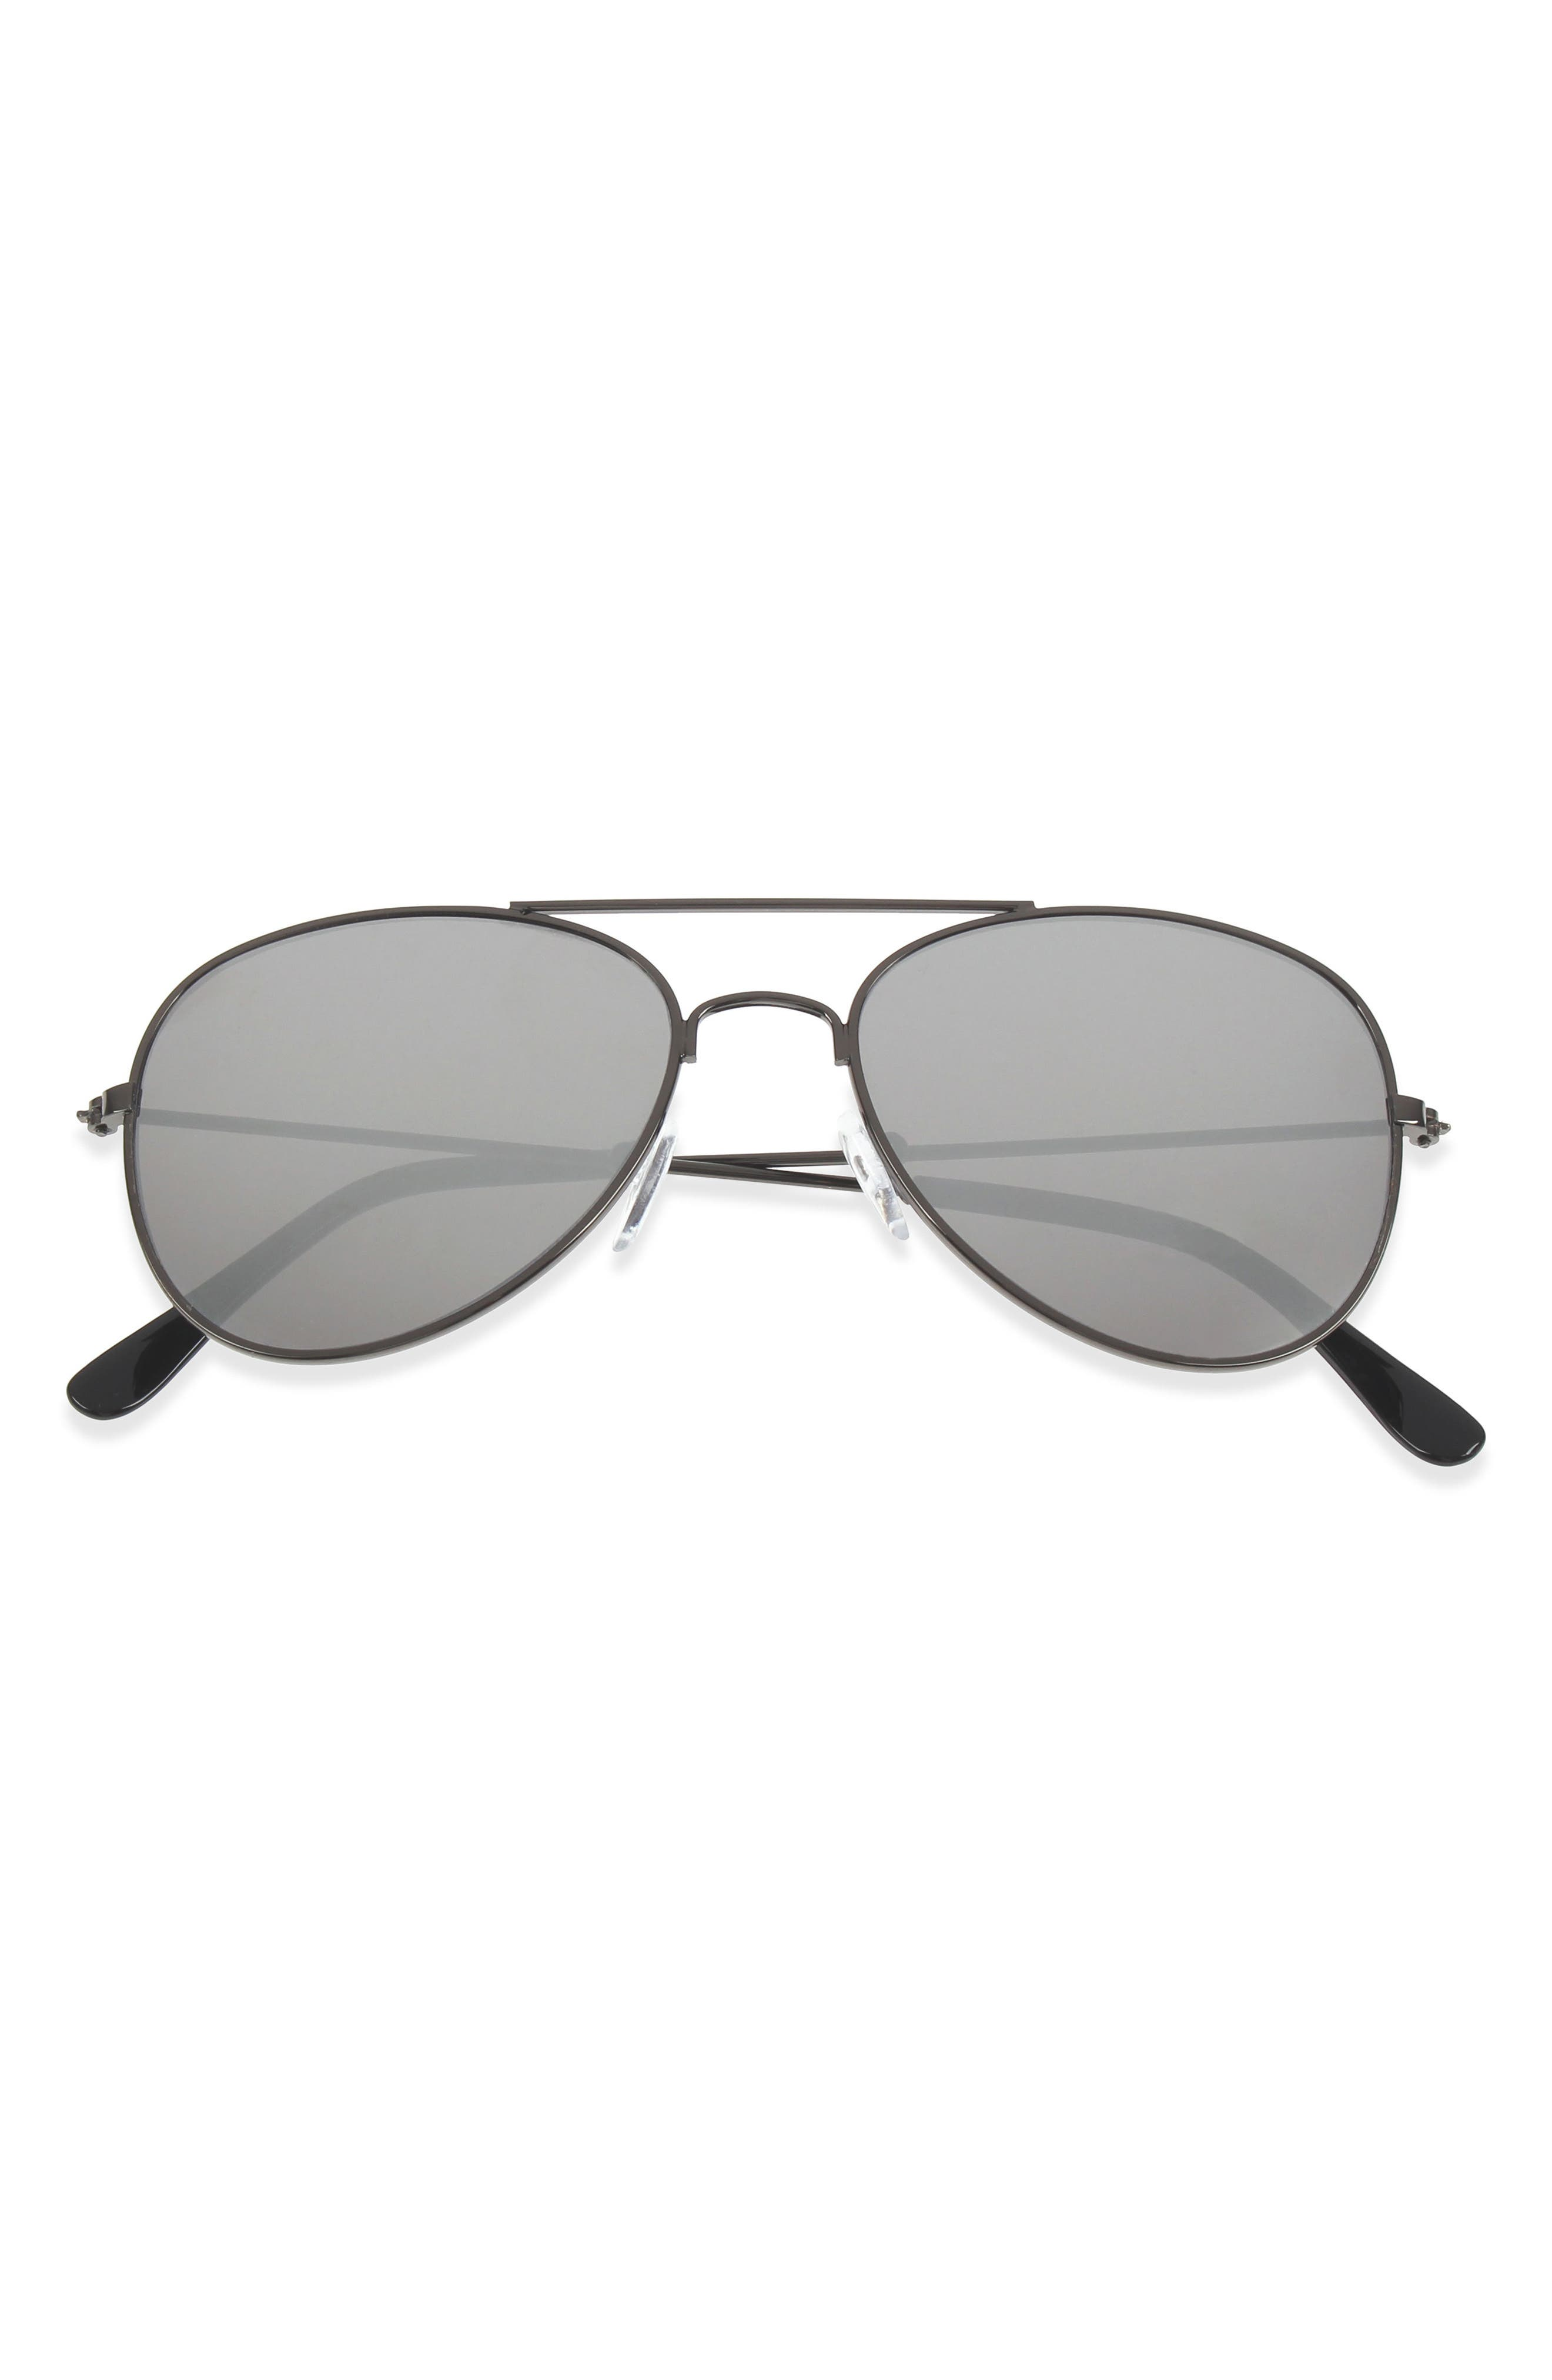 50mm Mirrored Aviator Sunglasses,                         Main,                         color, 002